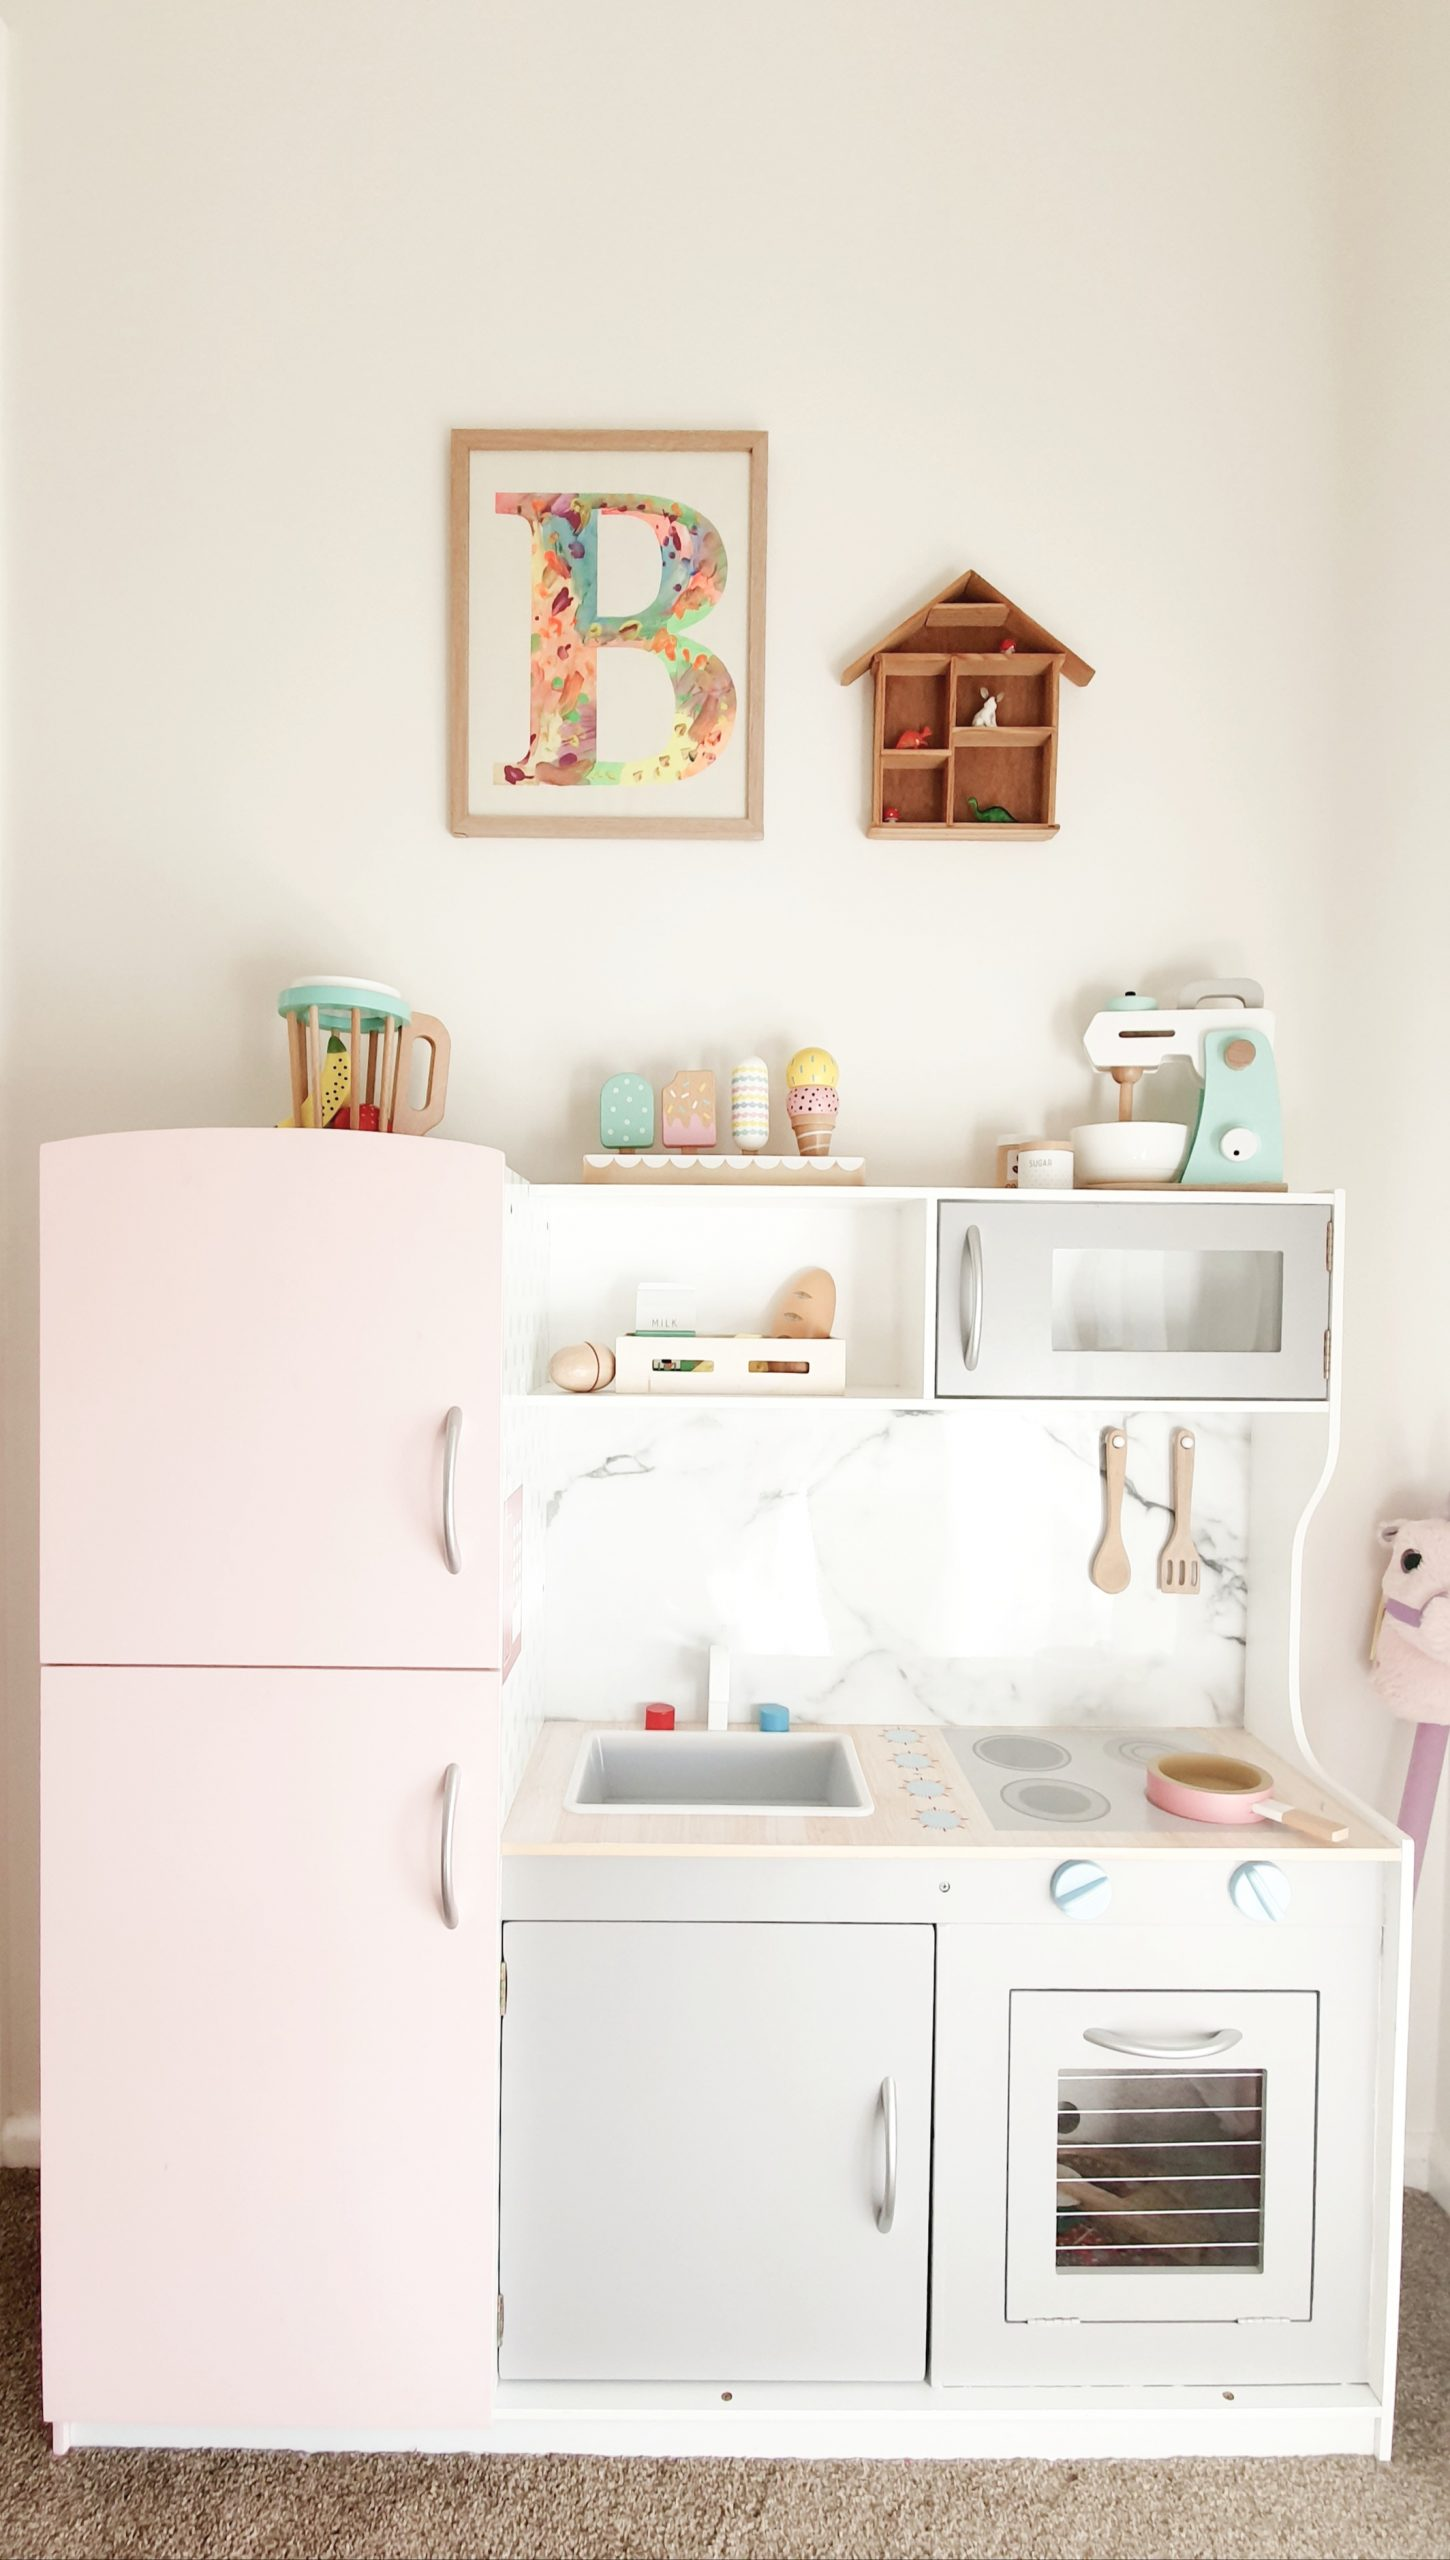 Our Little Playroom - Kmart Kid's Kitchen